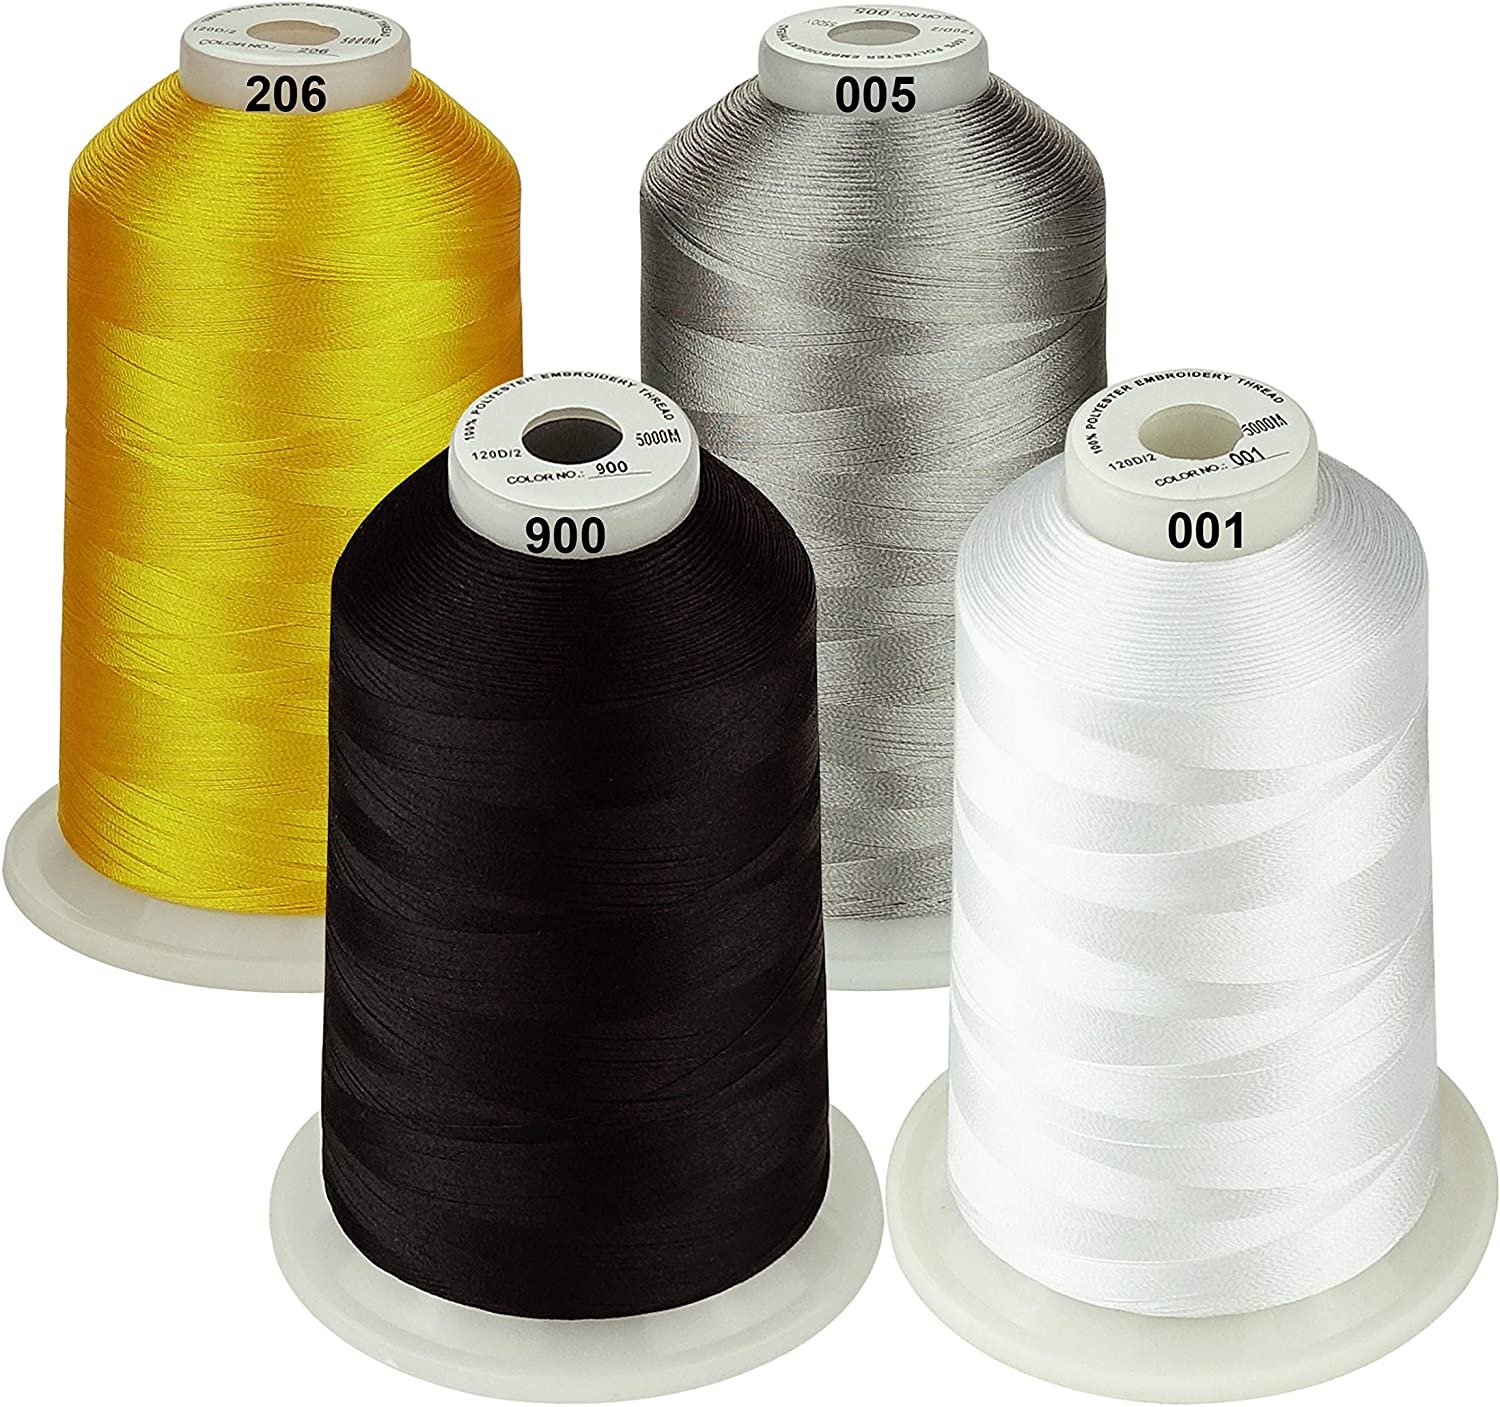 Black White Gold Silver Simthread 42 Options Various Assorted Color Packs of Polyester Embroidery Machine Thread Huge Spool 5000M for All Embroidery Machines